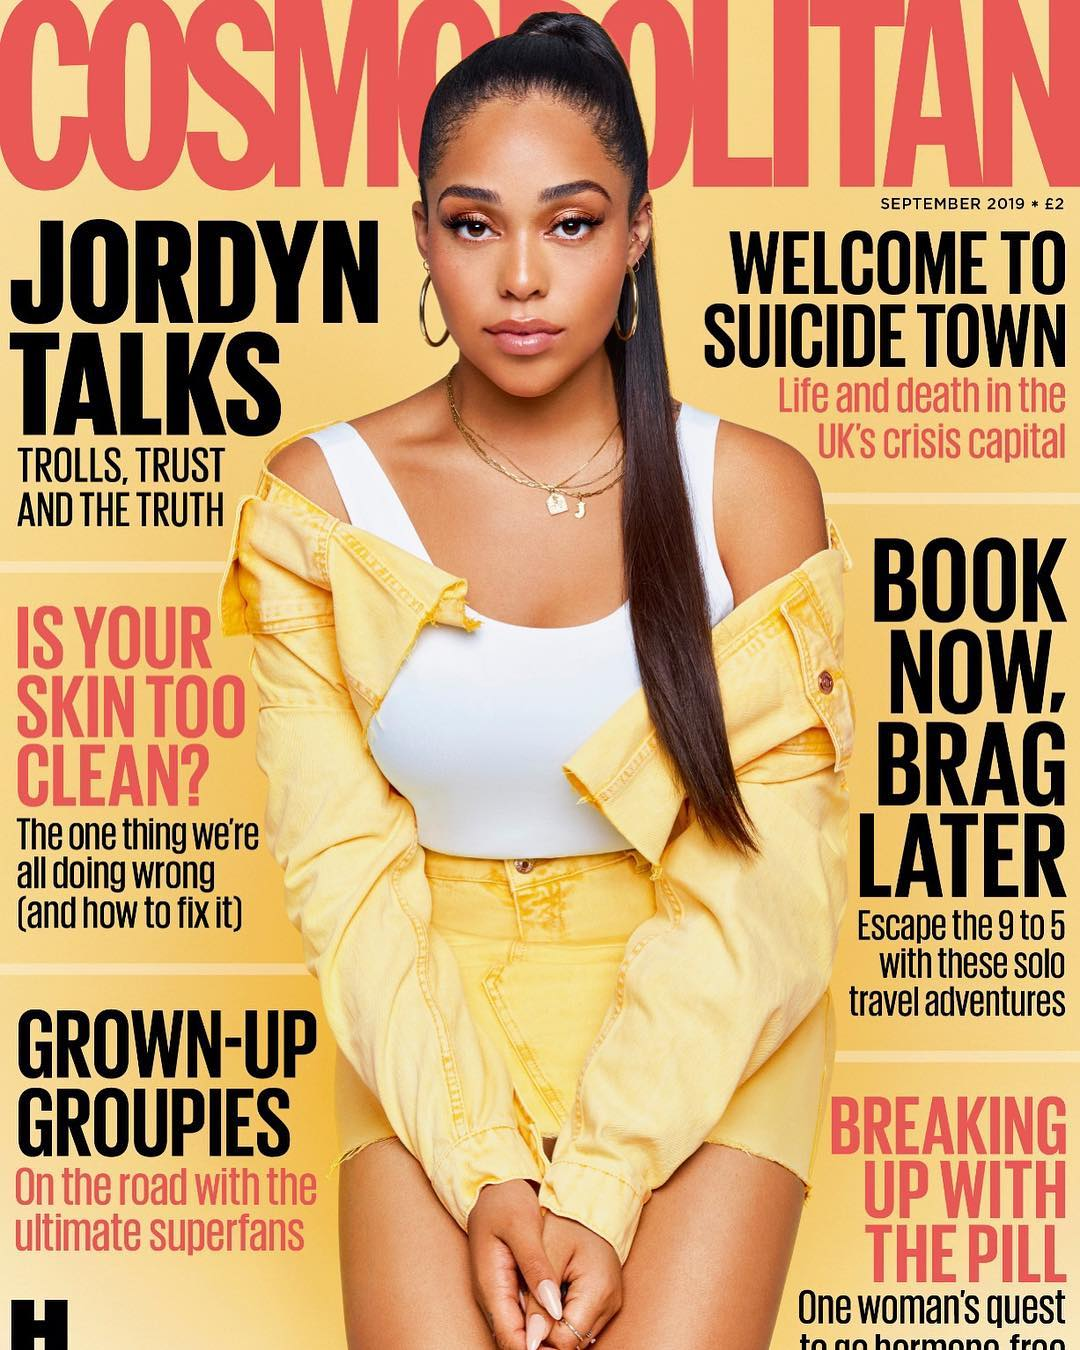 Cosmopolitan Sept 2019: Everything Jordyn Woods Said About Tristan, Khloe, Kylie